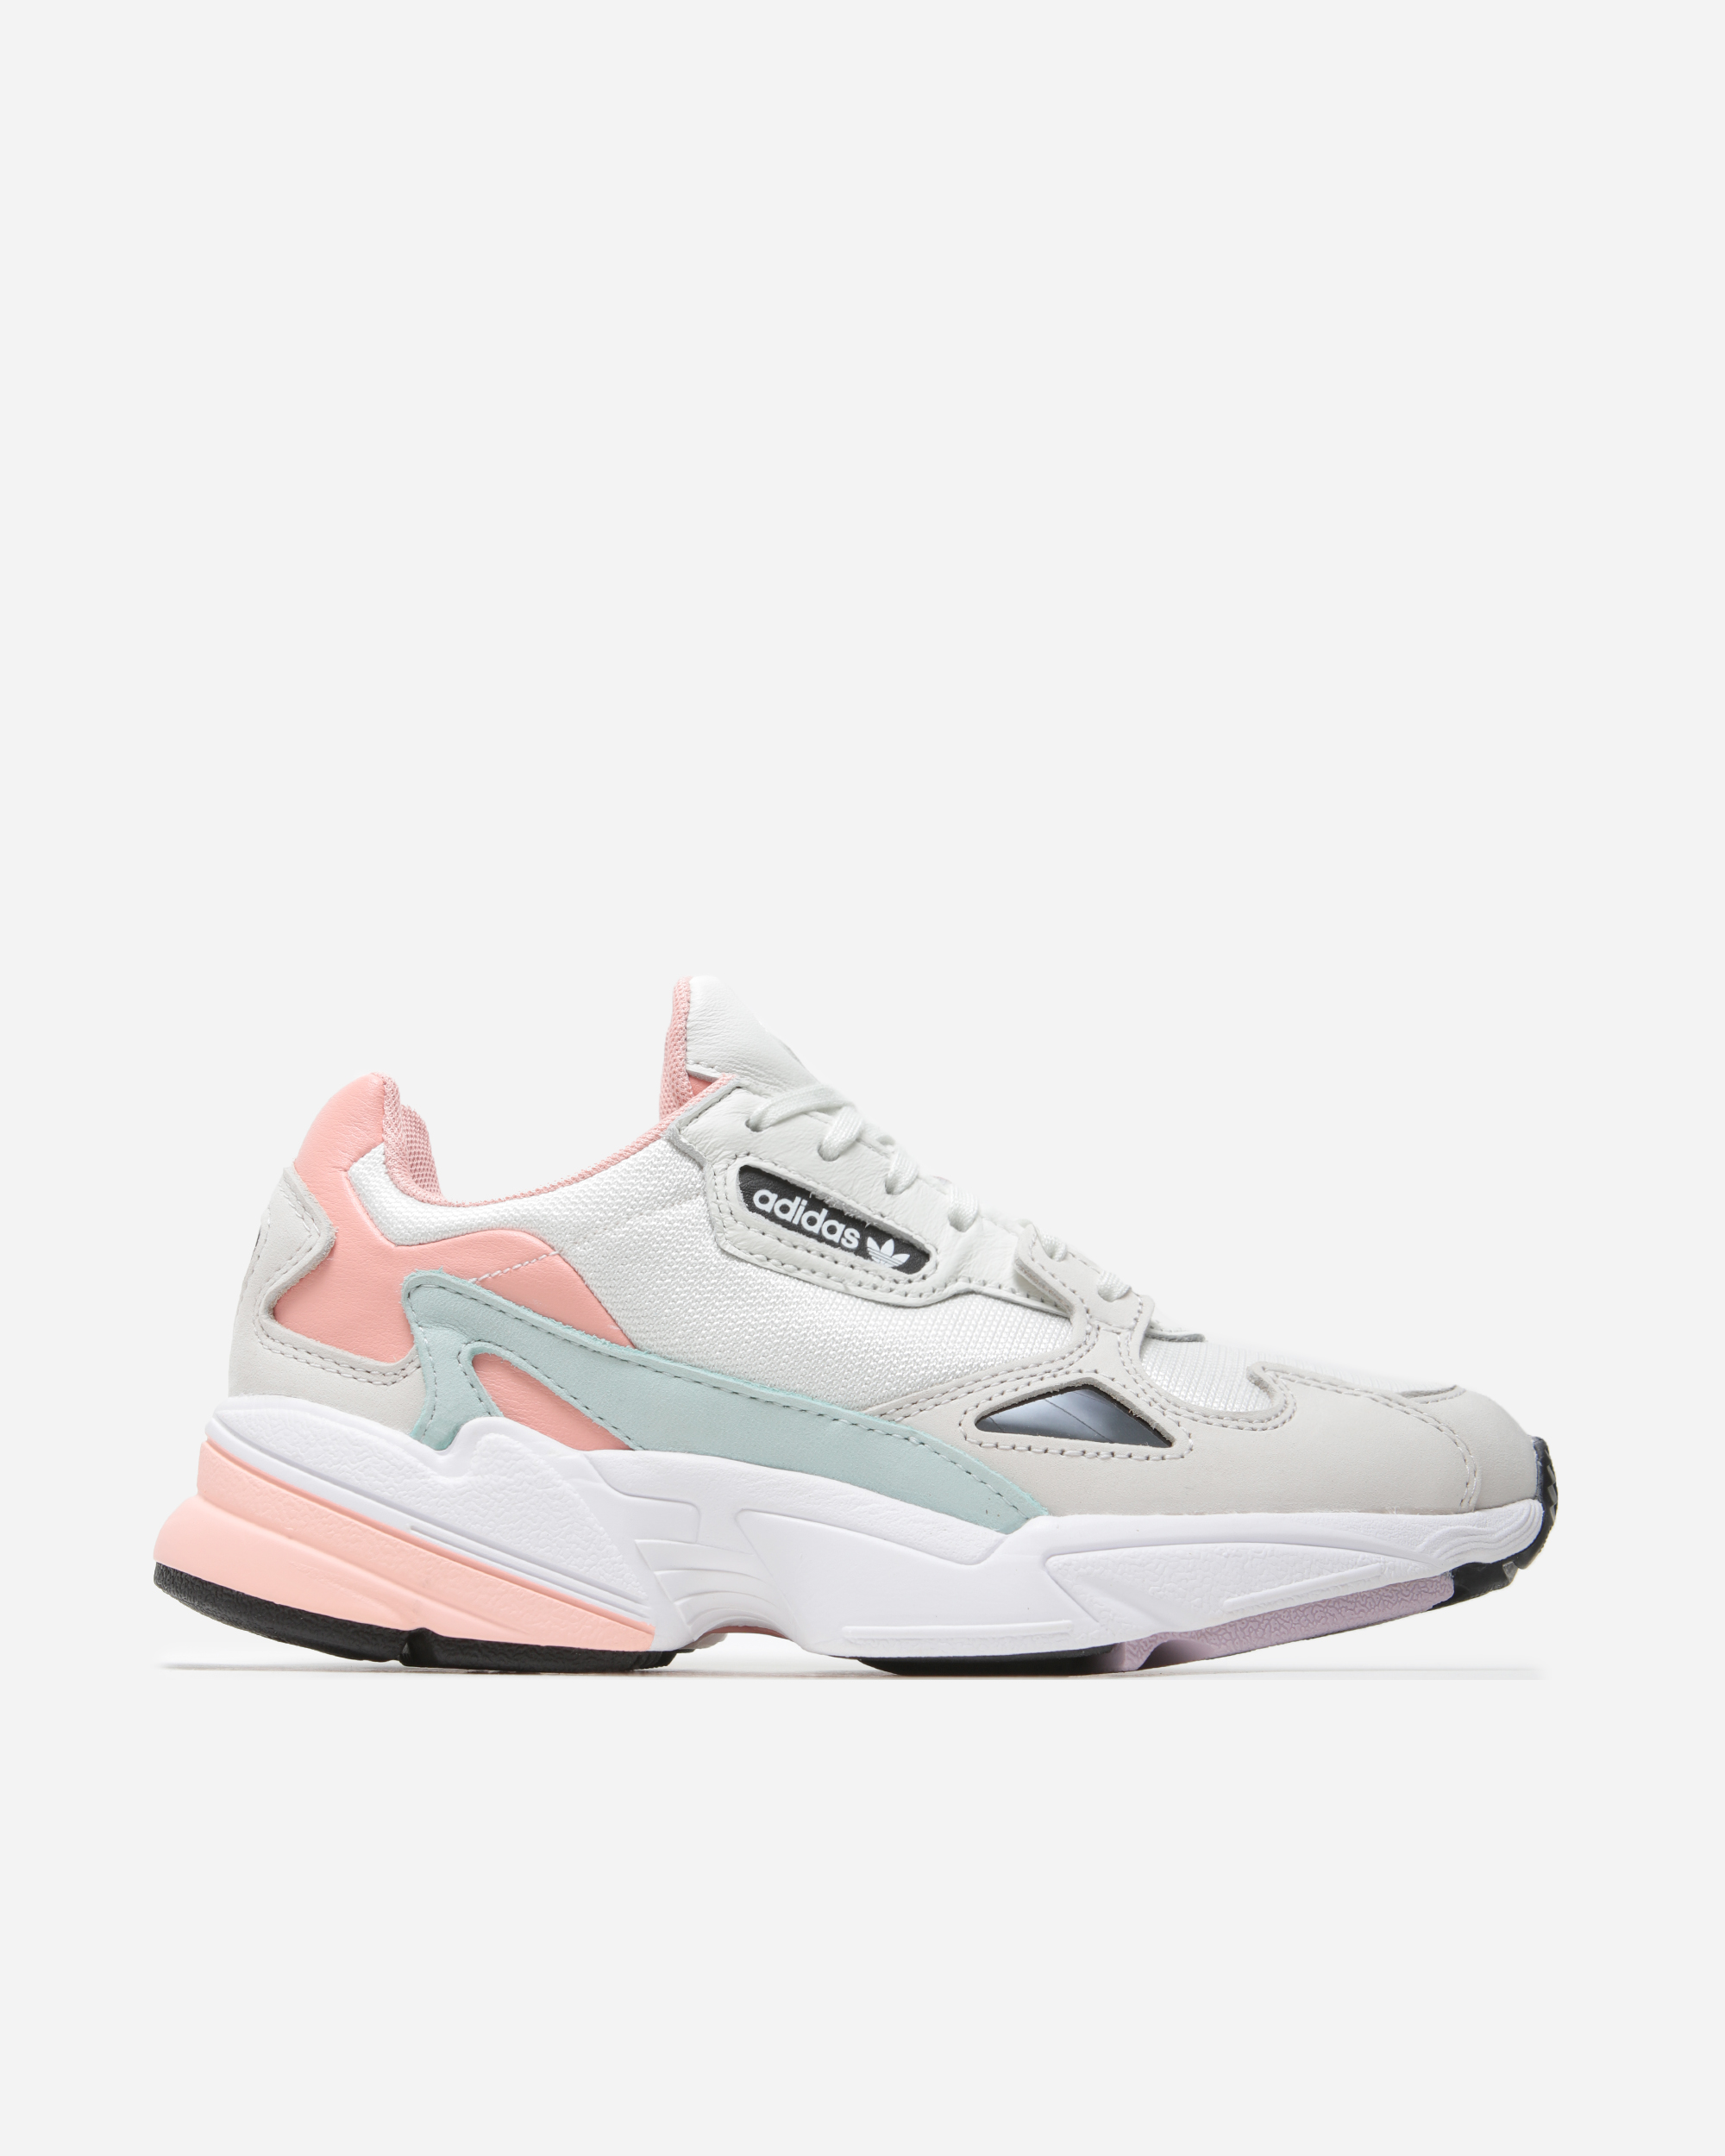 Adidas Originals Falcon Raw White/Trace Pink | EE4149 – Naked